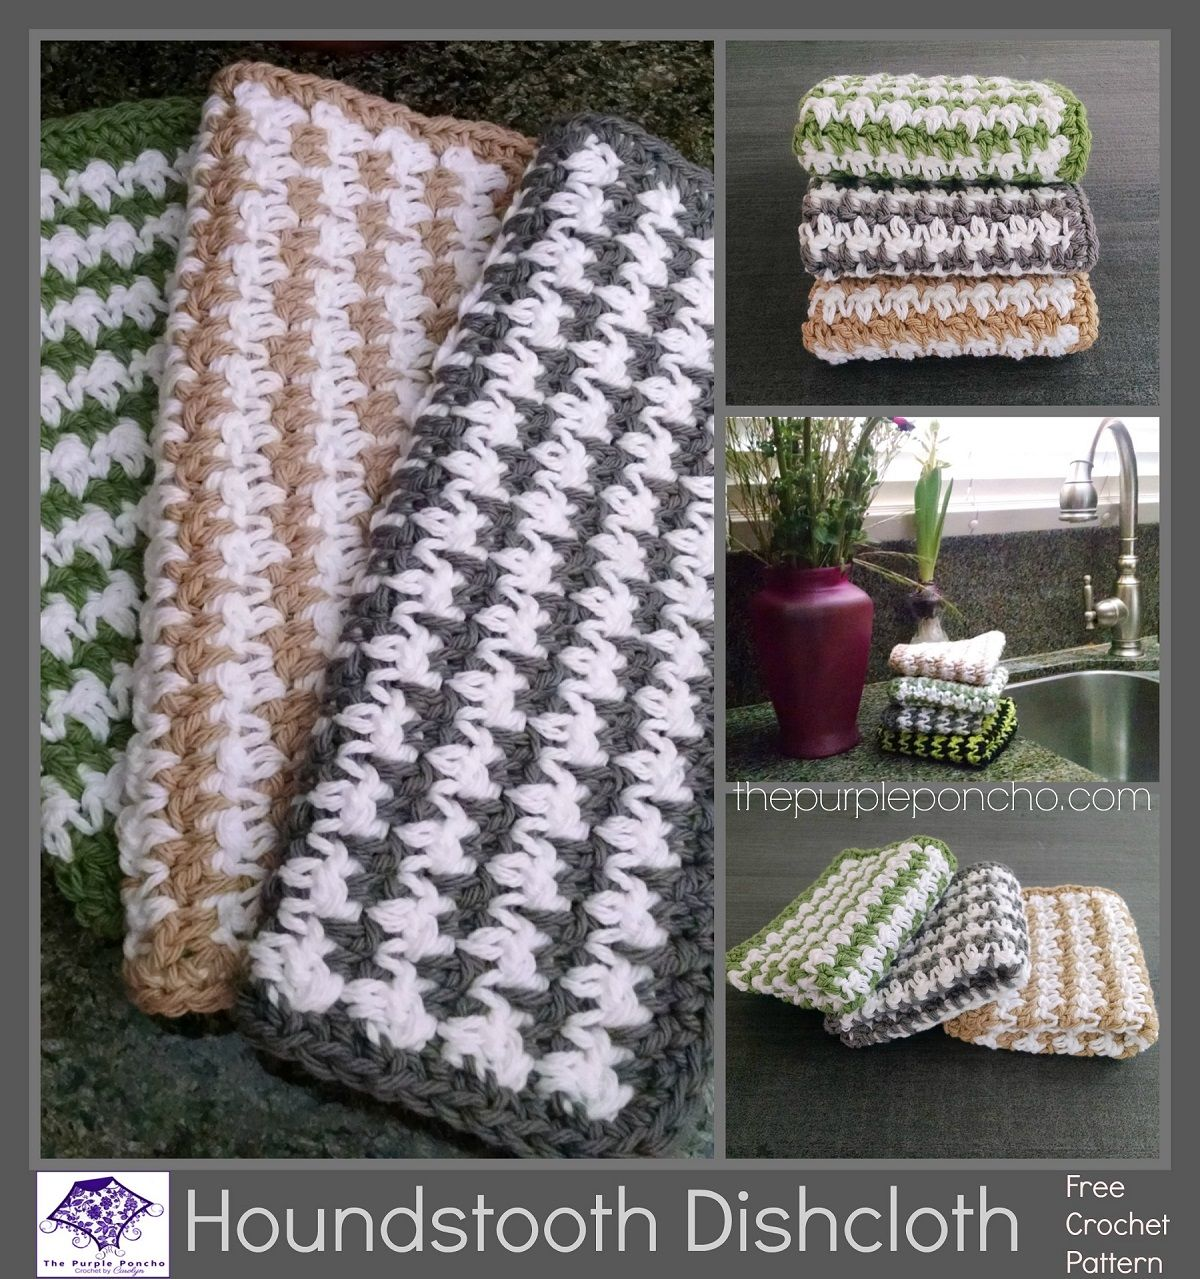 Houndstooth dishcloth free crochet pattern the purple poncho houndstooth dishcloth free crochet pattern the purple poncho dt1010fo